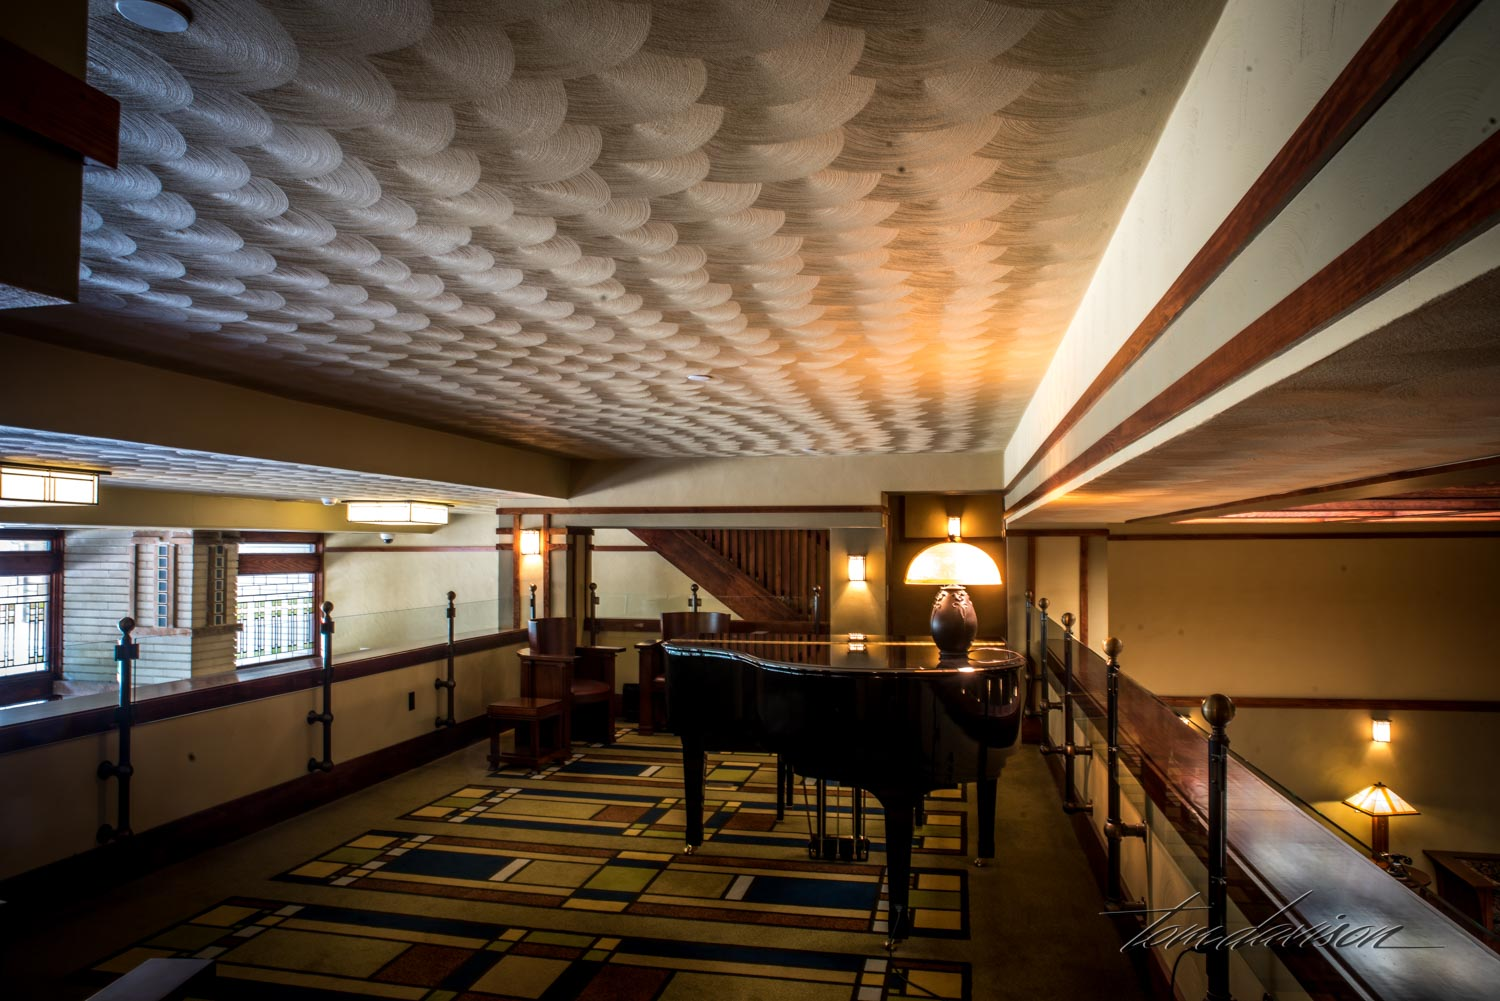 This is the mezzanine of the Park Inn Motel designed by Frank Lloyd Wright and built in 19010. As we toured the inside (tripods allowed) I was impressed with the obvious and abandant patterns that I associate with a Wright design. The geometric patterns, the open feeling, the way everything seem to fit together was impressive.